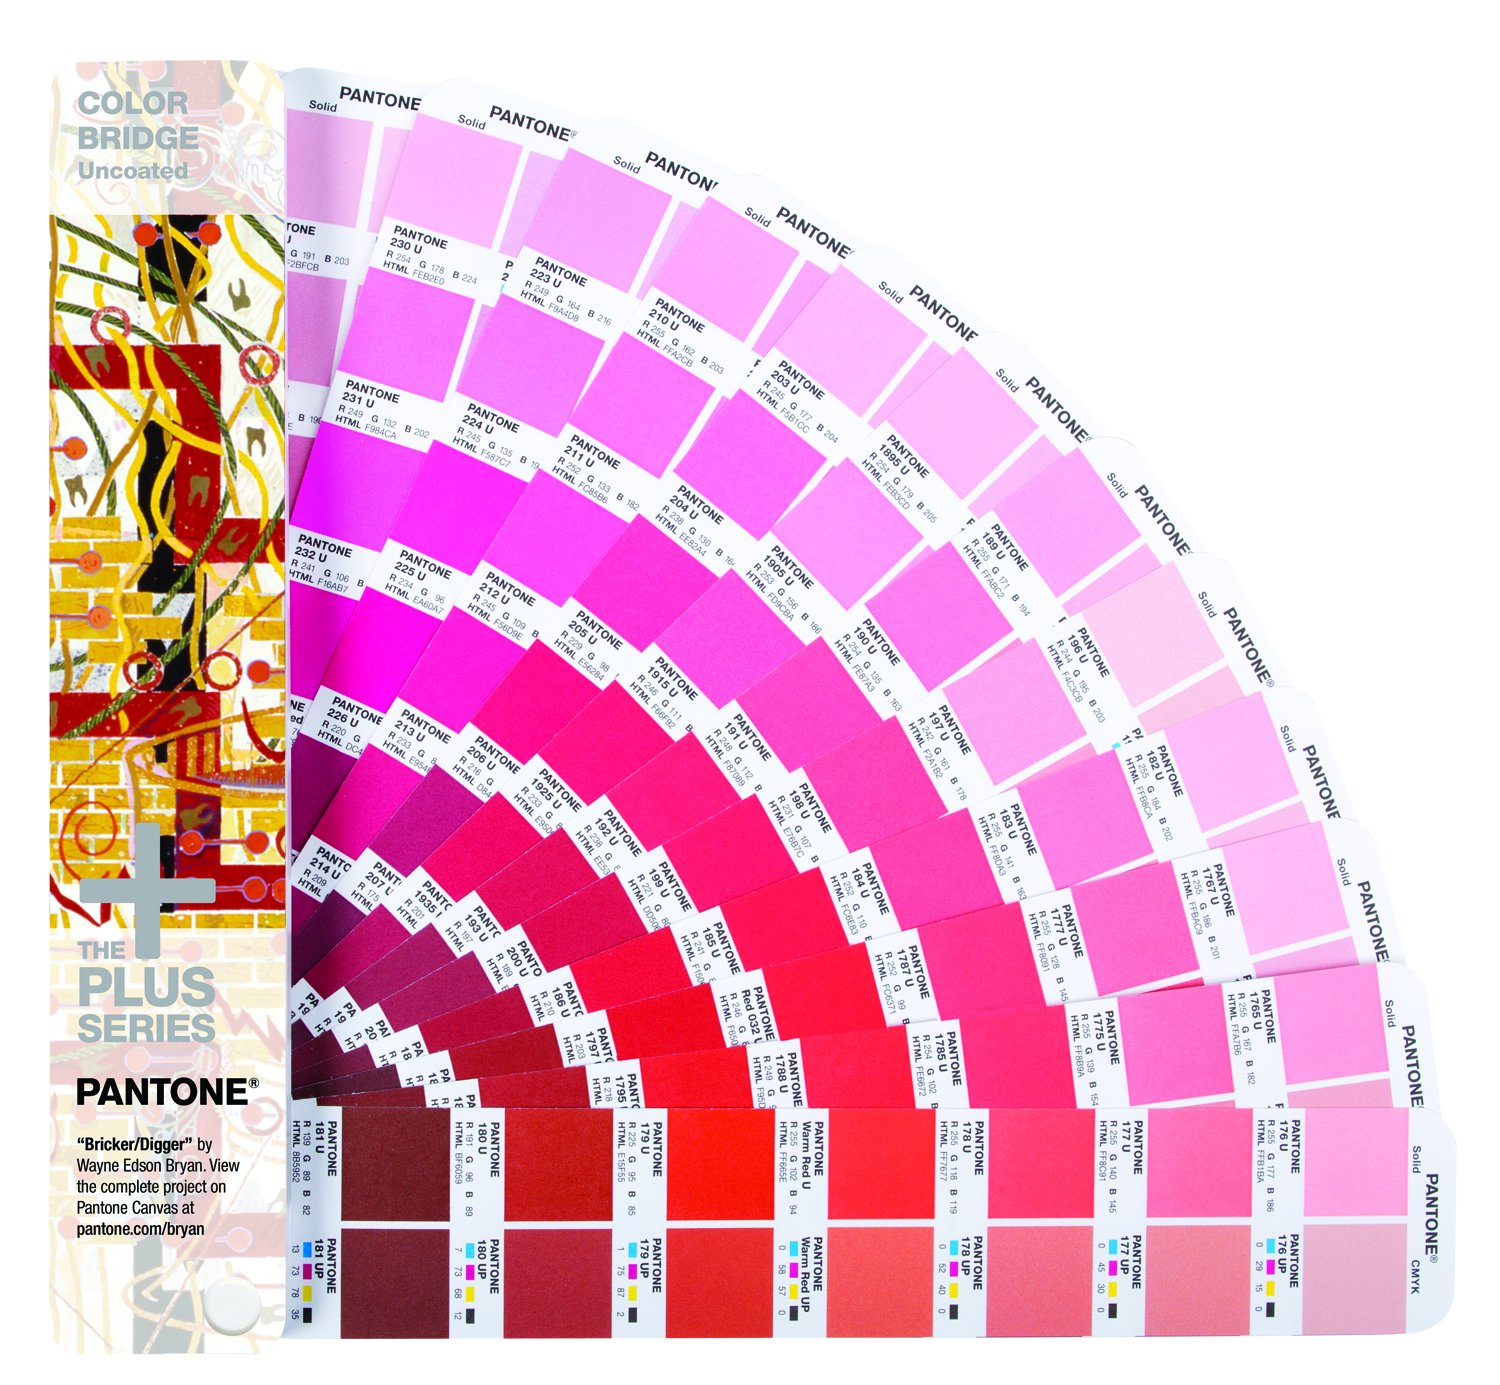 Pantone Colorbridge Guide uncoated, GG6104